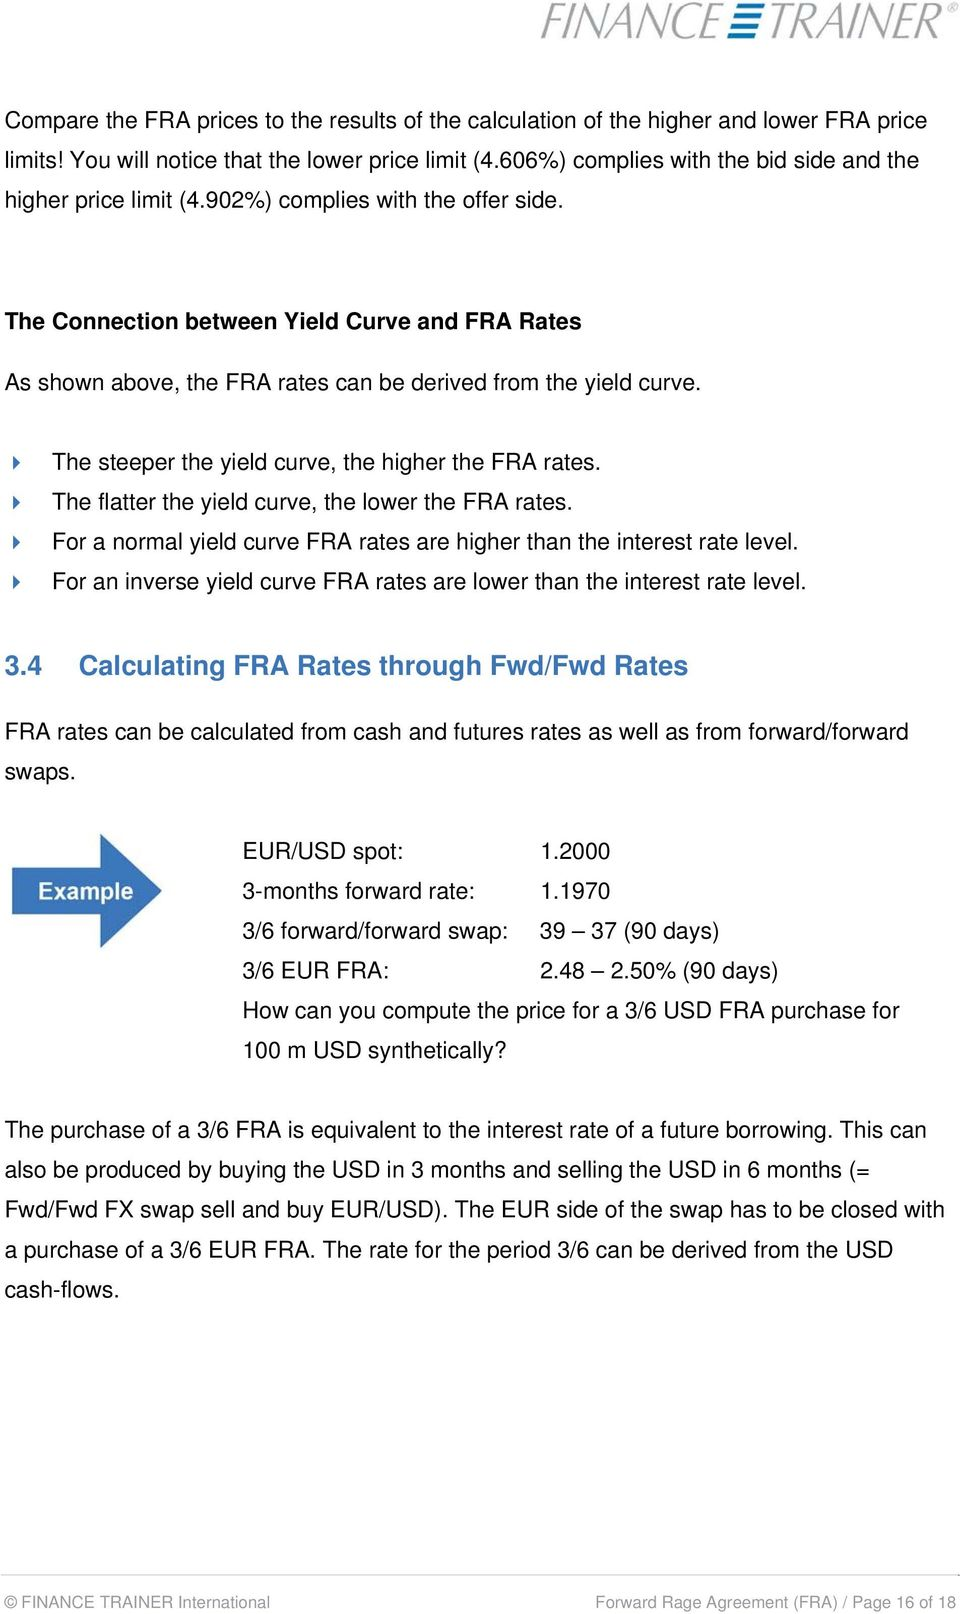 The Connection between Yield Curve and FRA Rates As shown above, the FRA rates can be derived from the yield curve. The steeper the yield curve, the higher the FRA rates.